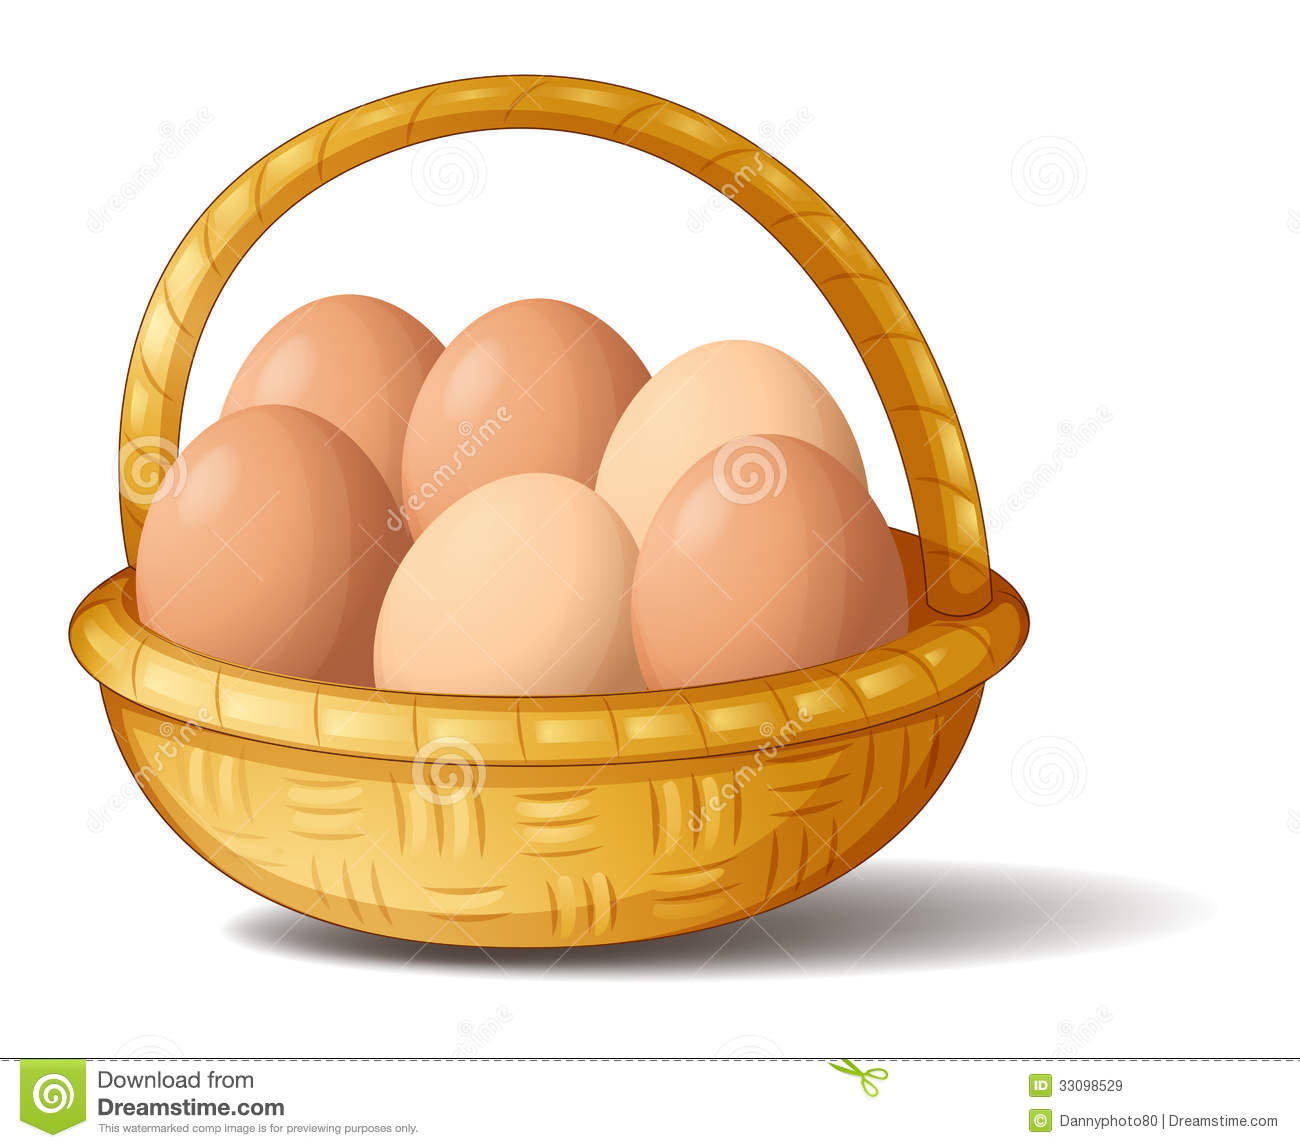 Eggs in one basket dating after divorce 2